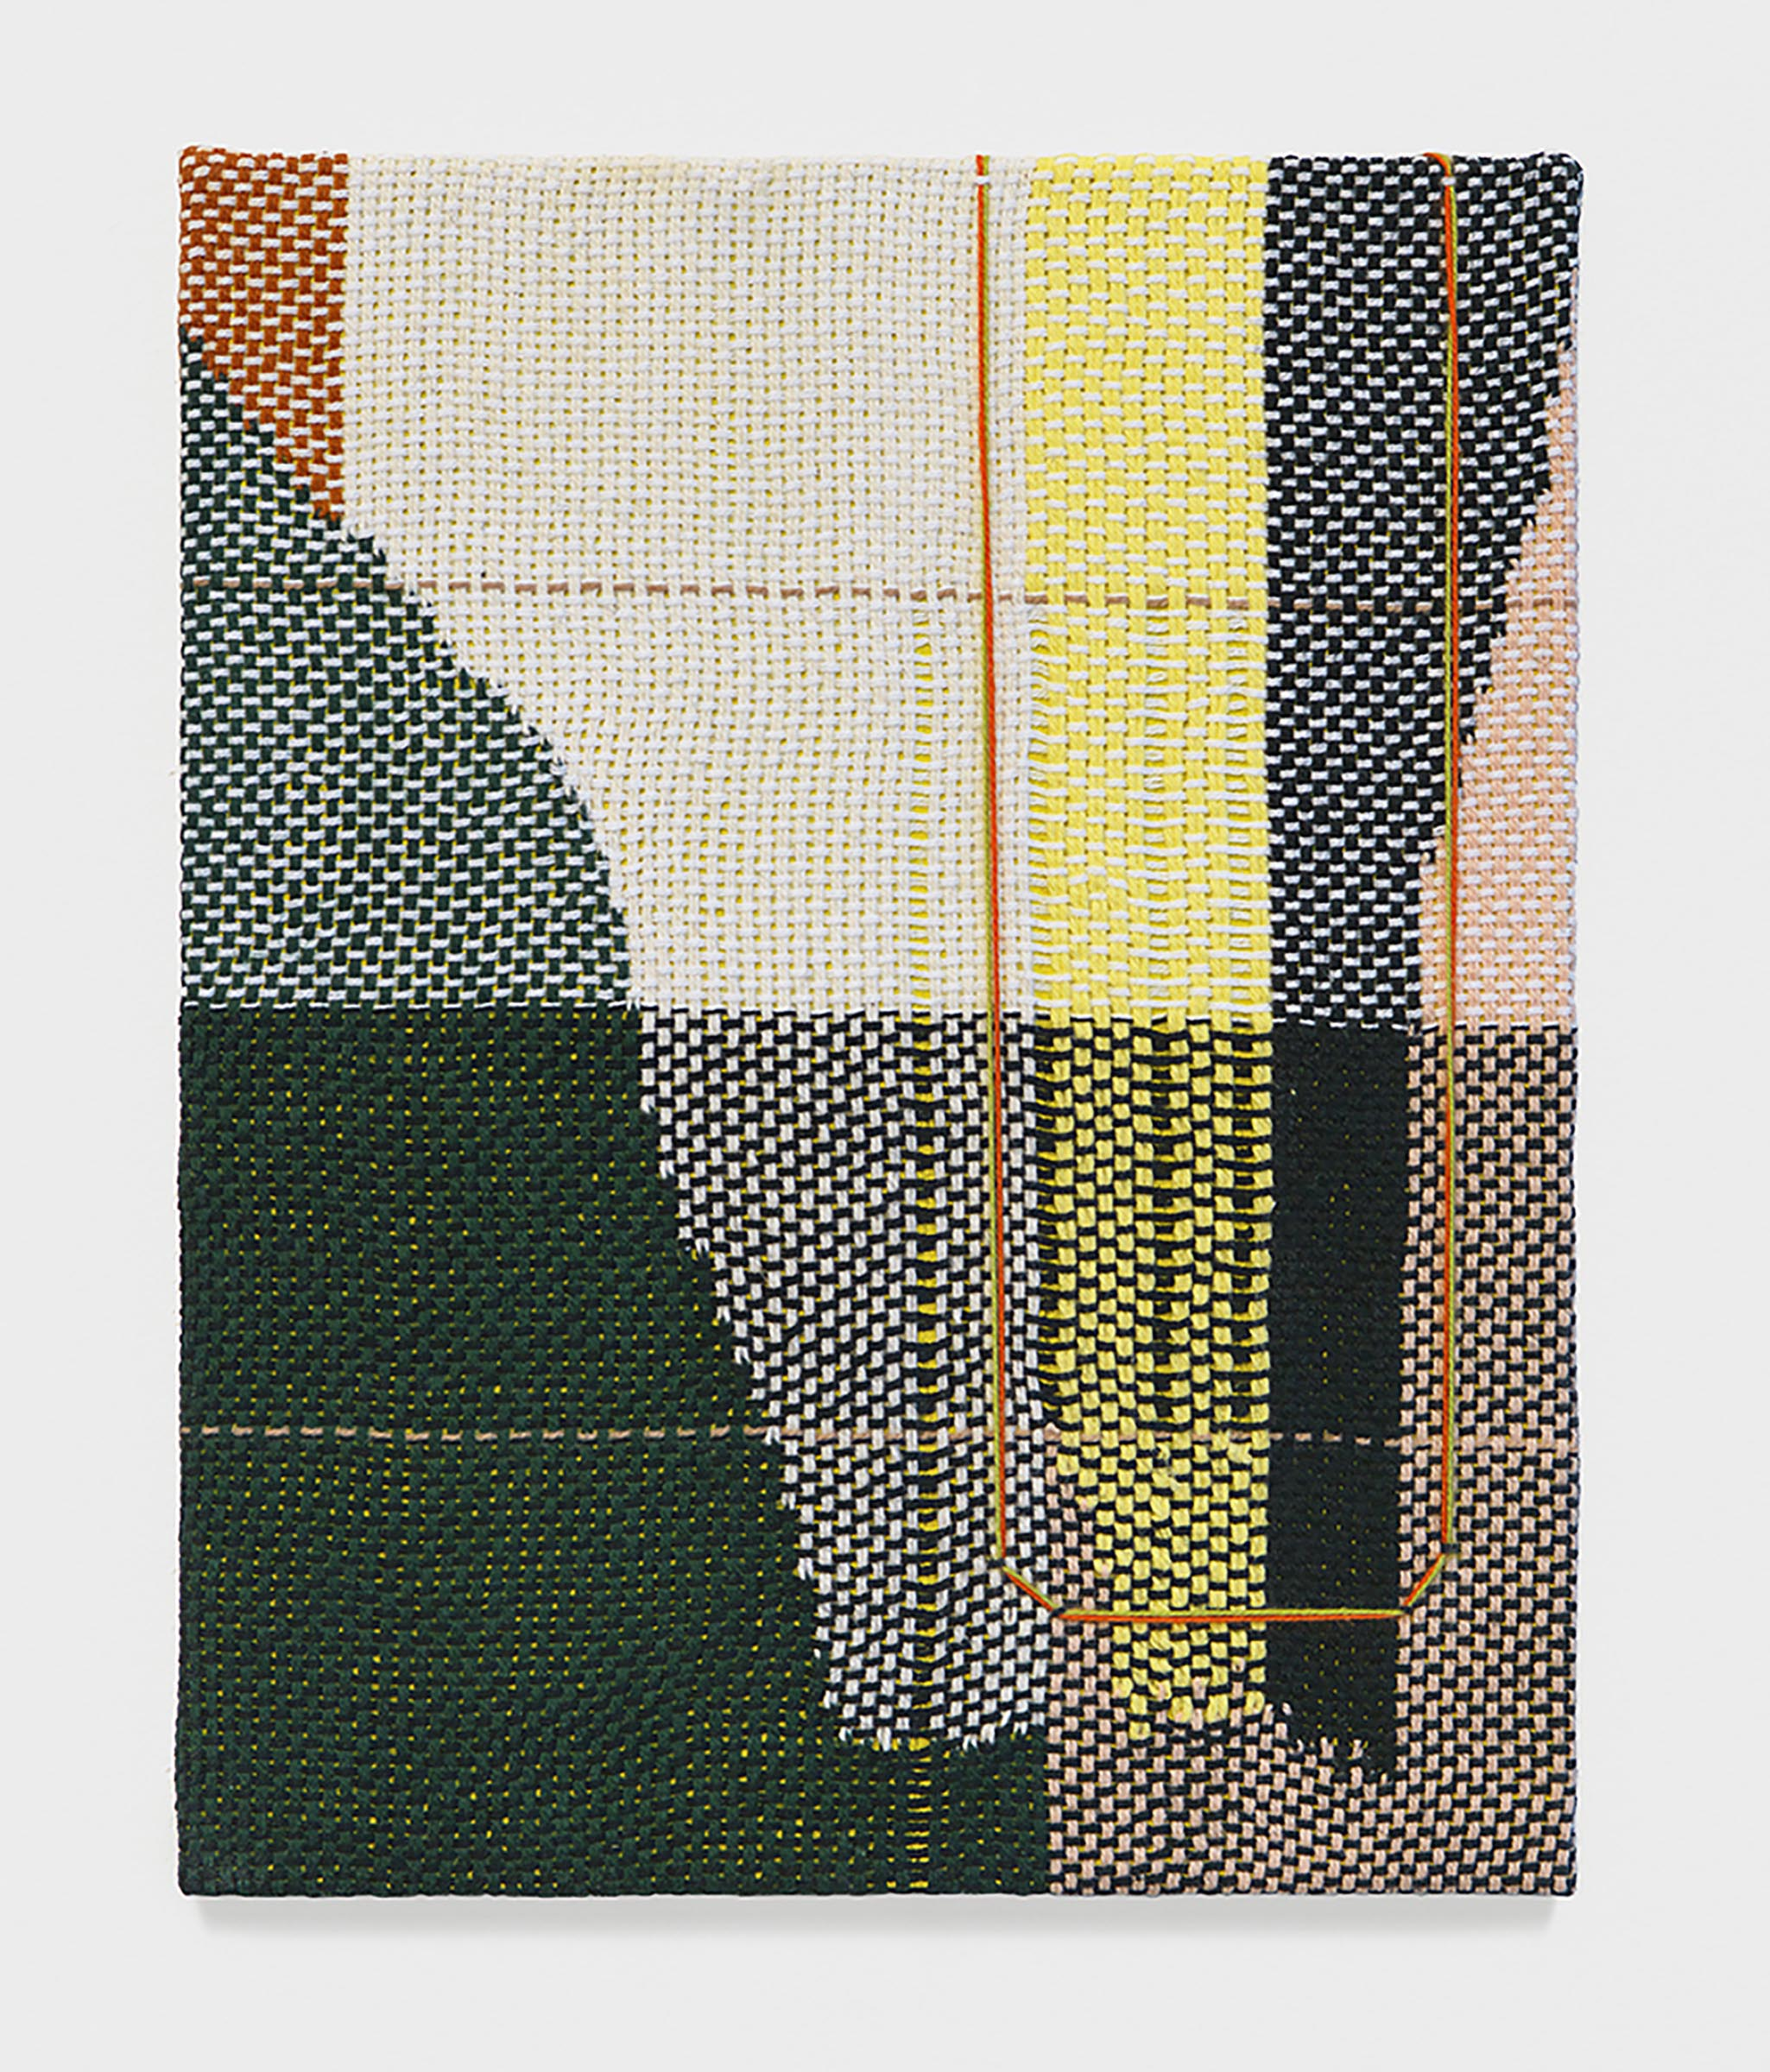 Mary Raap, Night Shift, Edition 1 of 28, Handwoven cotton and acrylic over panel, 10 x 8 x .25 in, 2019